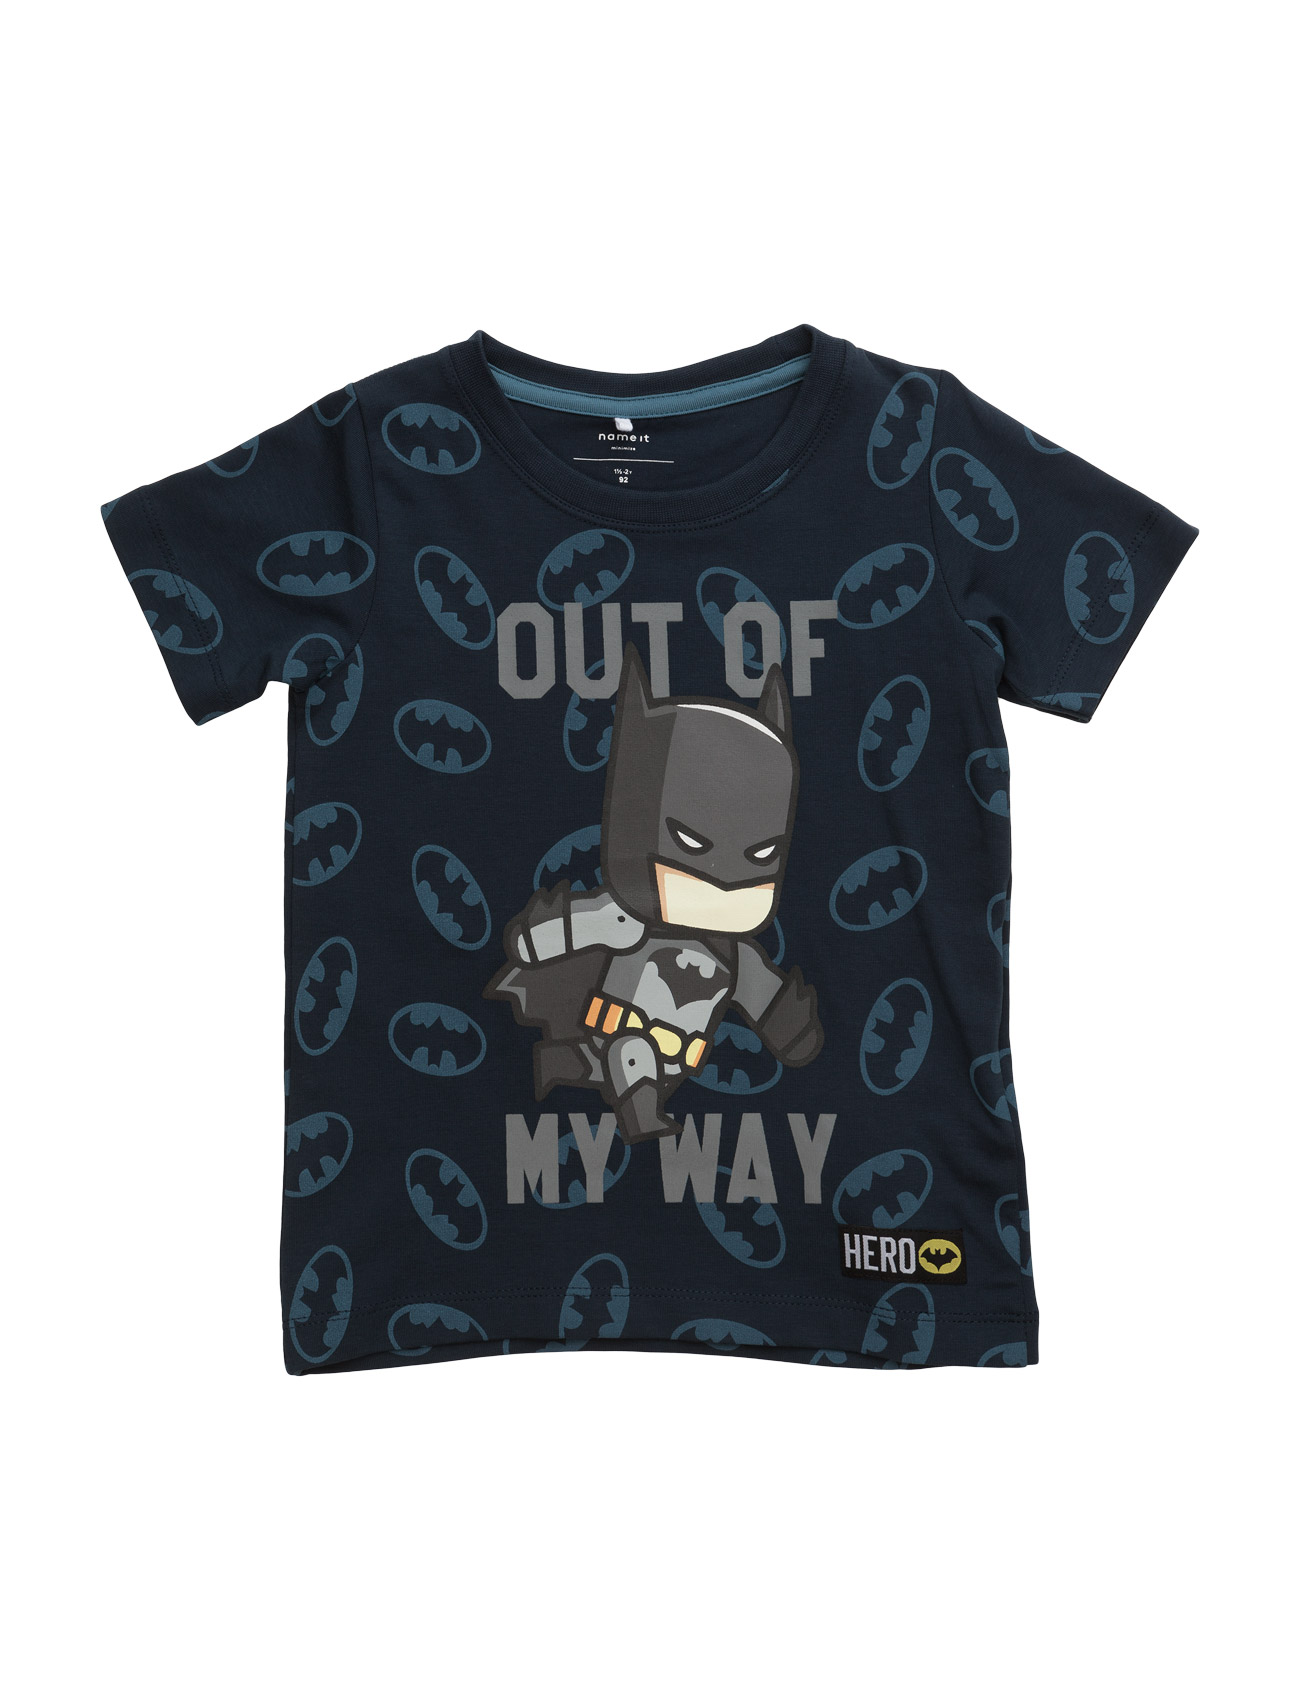 Nitbatman Bo Ss Aop Top Wab Mz name it Kortærmede t-shirts til Børn i Dress Blues